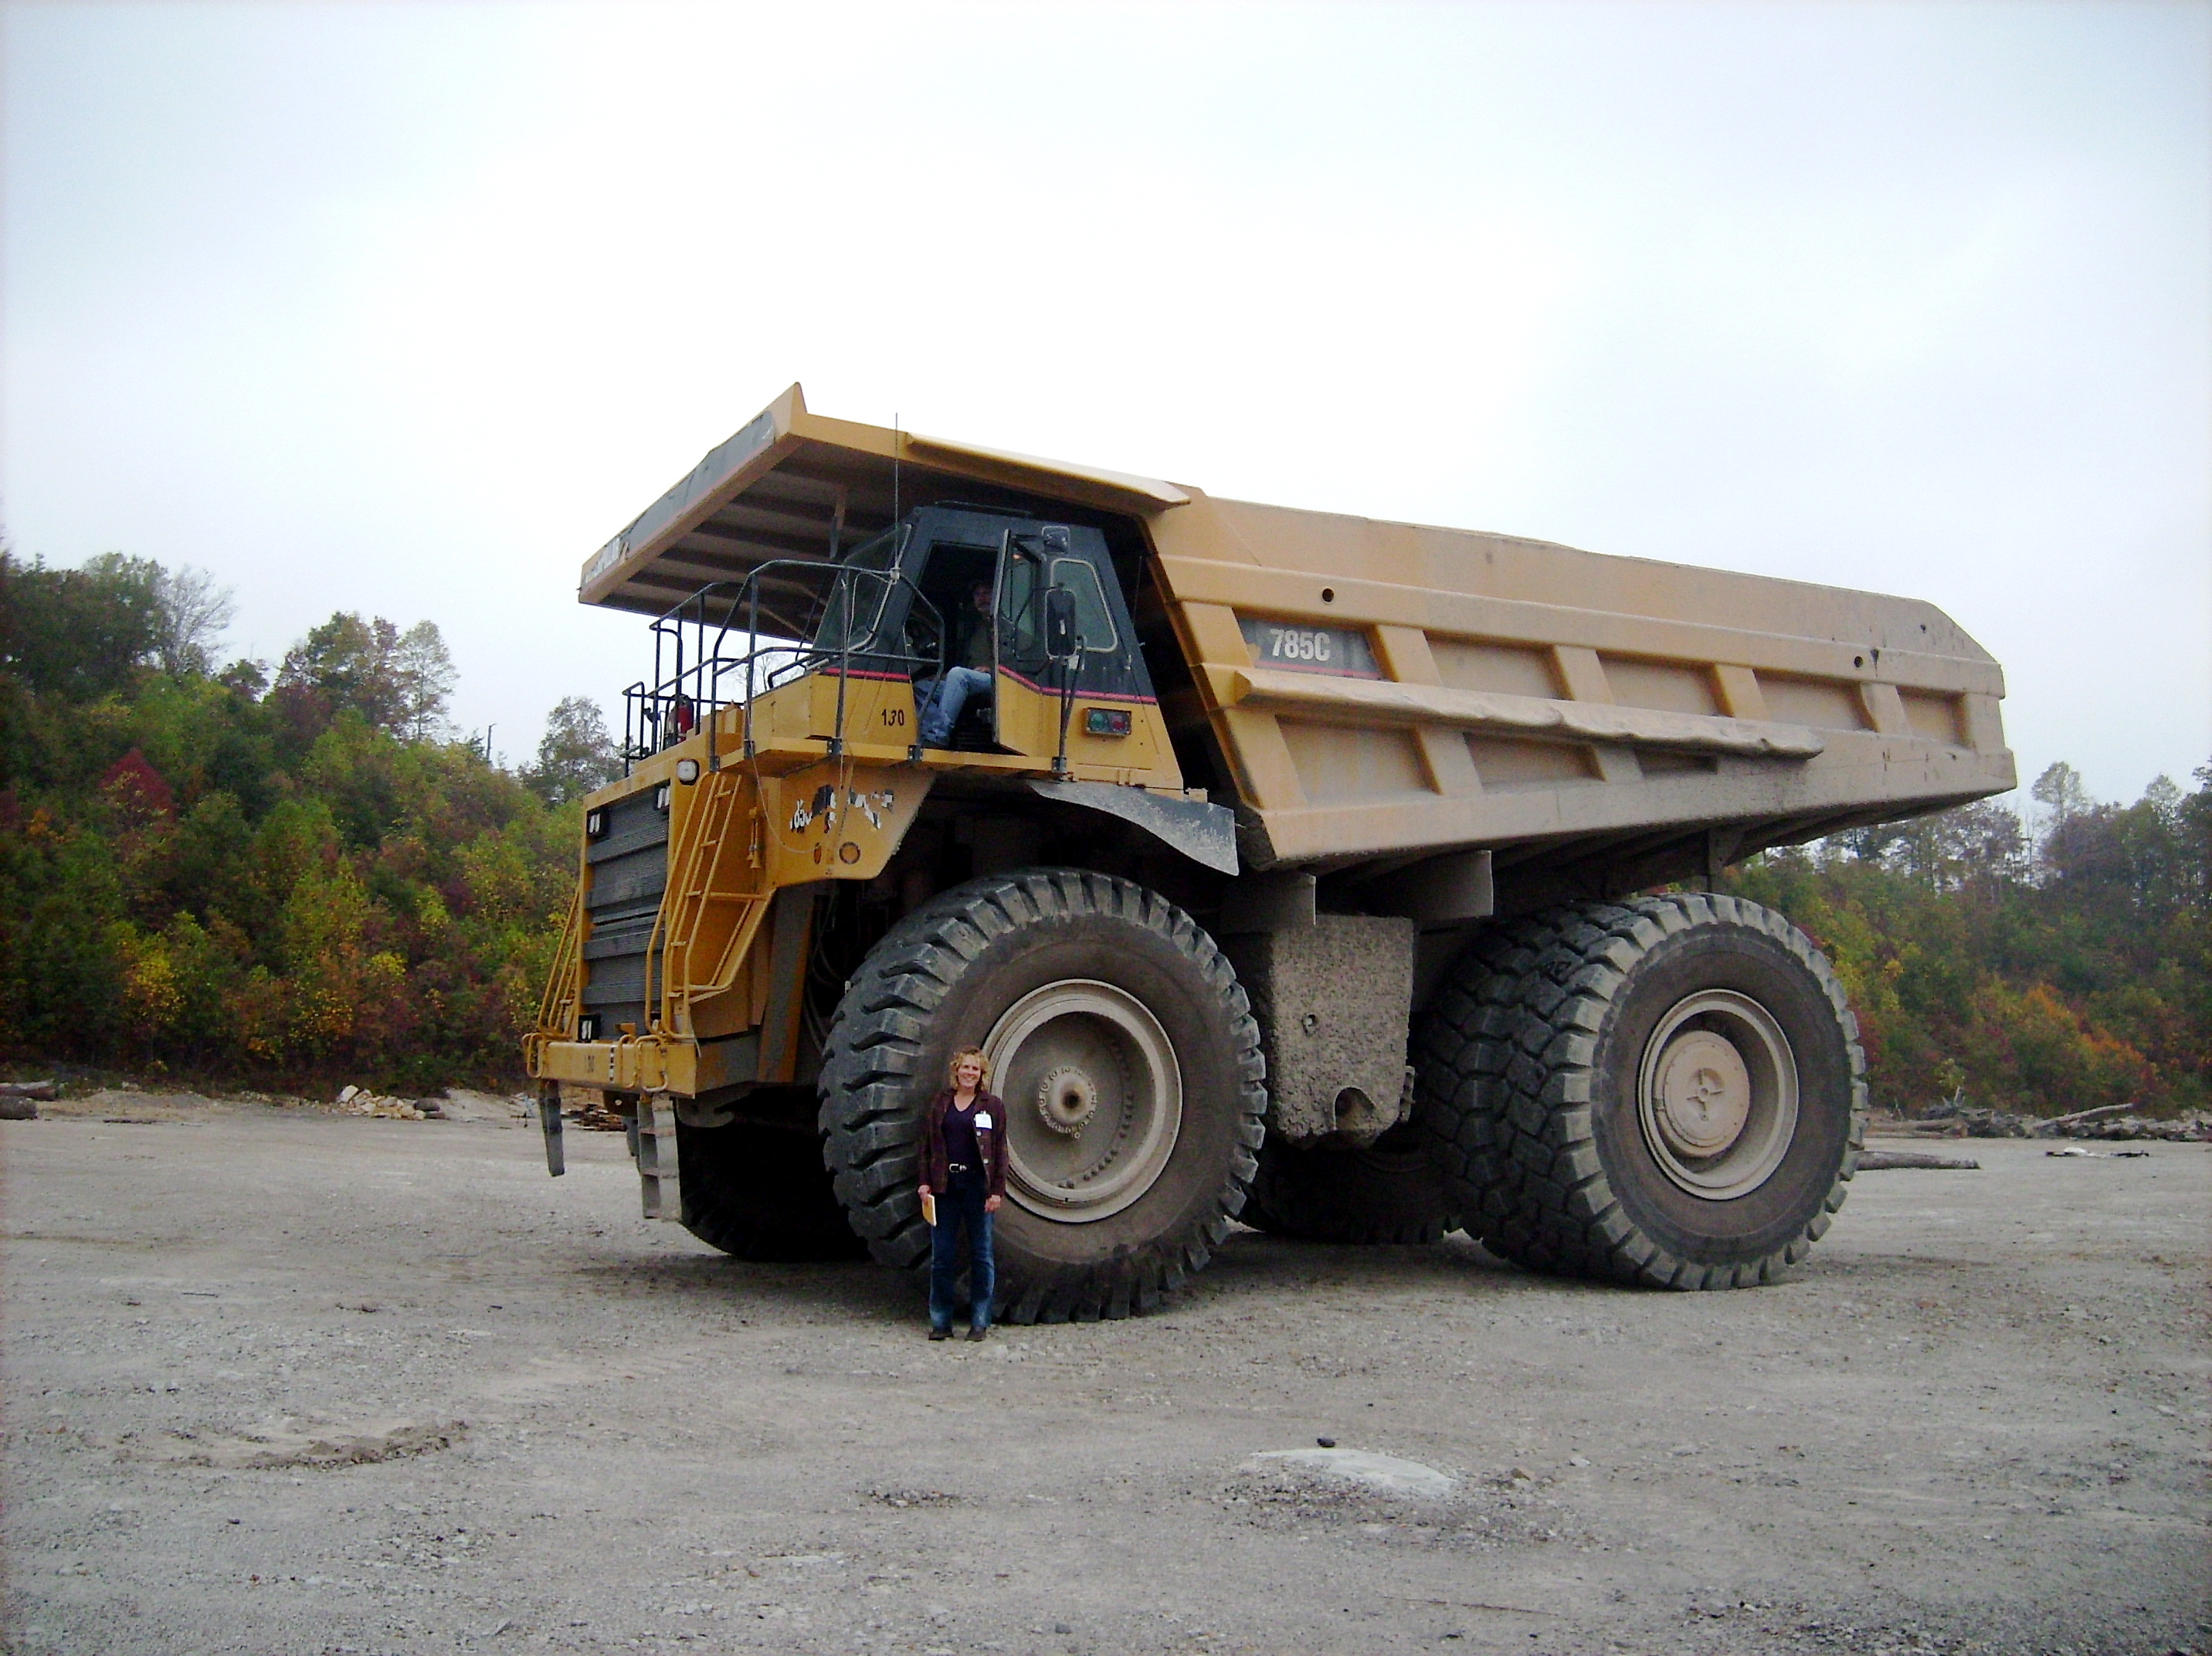 Dump truck moreover James Cullins 2015 Peterbilt 389 Glider also Hes Racing A Dump Truck Literally moreover Dumptruck together with Tow Truck Insurance. on gravel hauling trucks